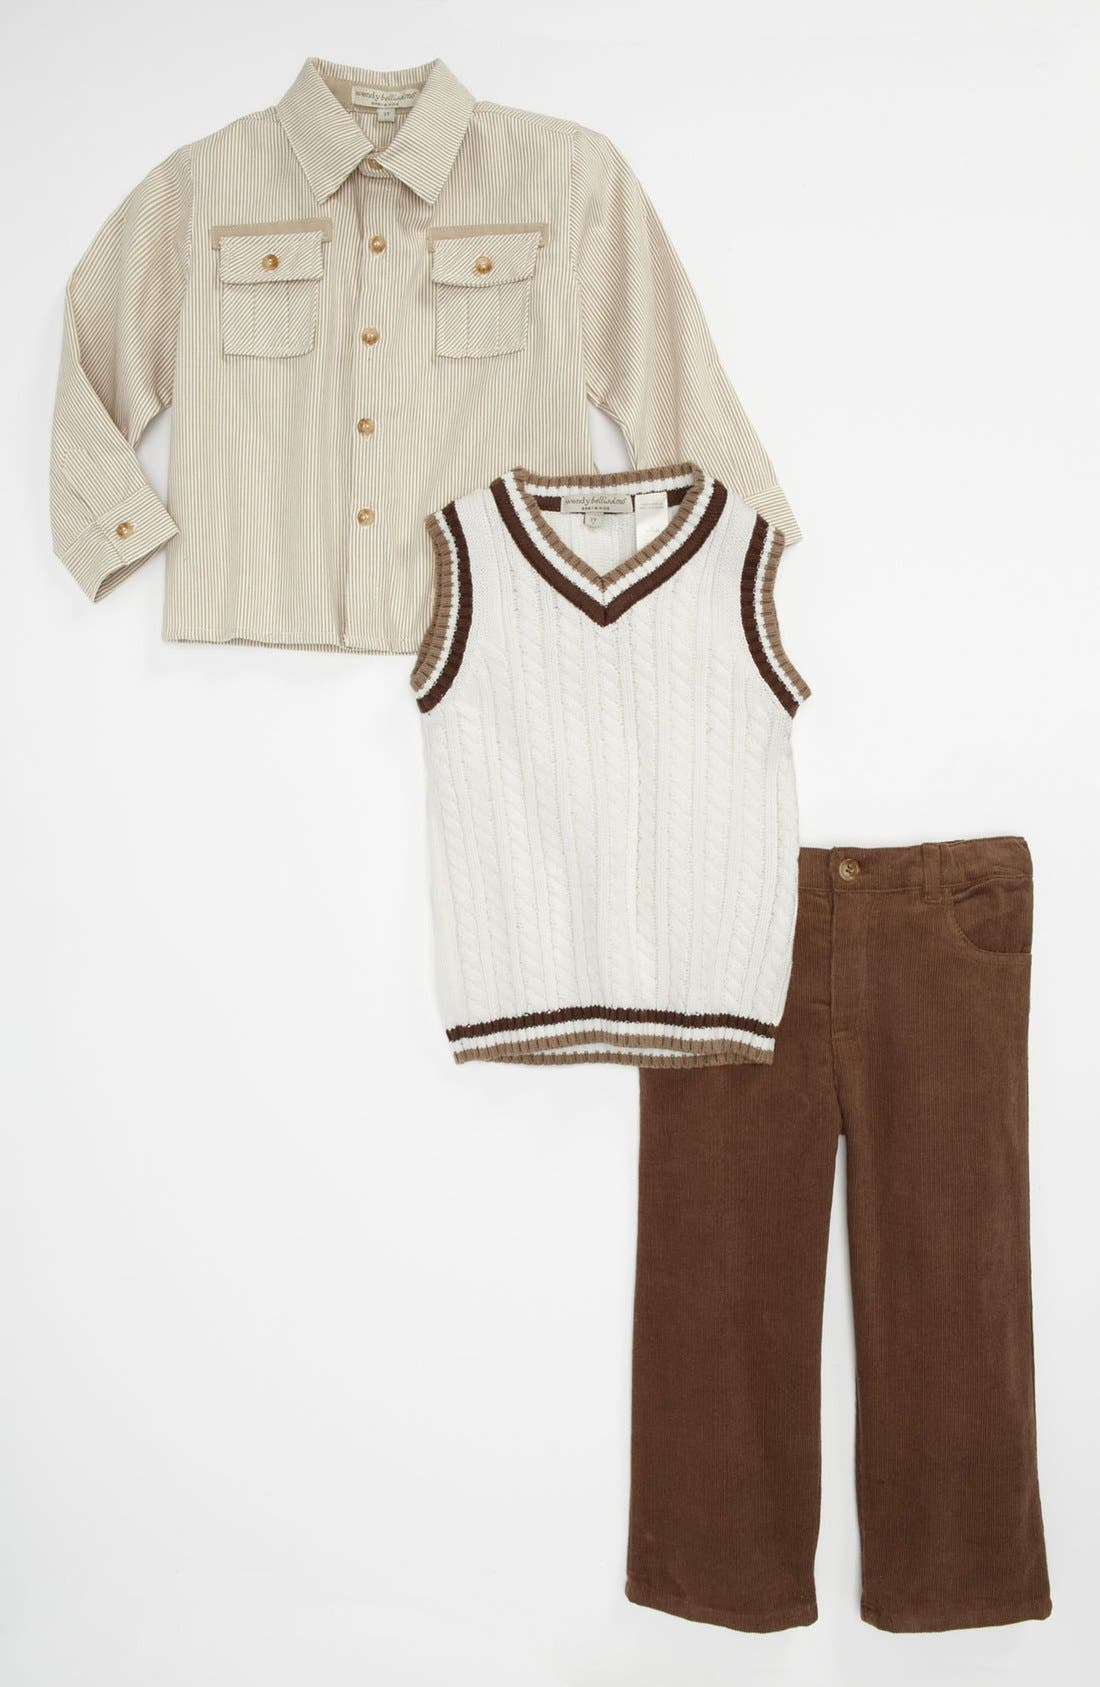 Alternate Image 1 Selected - Wendy Bellisimo Sweater, Shirt and Pants Set (Baby)